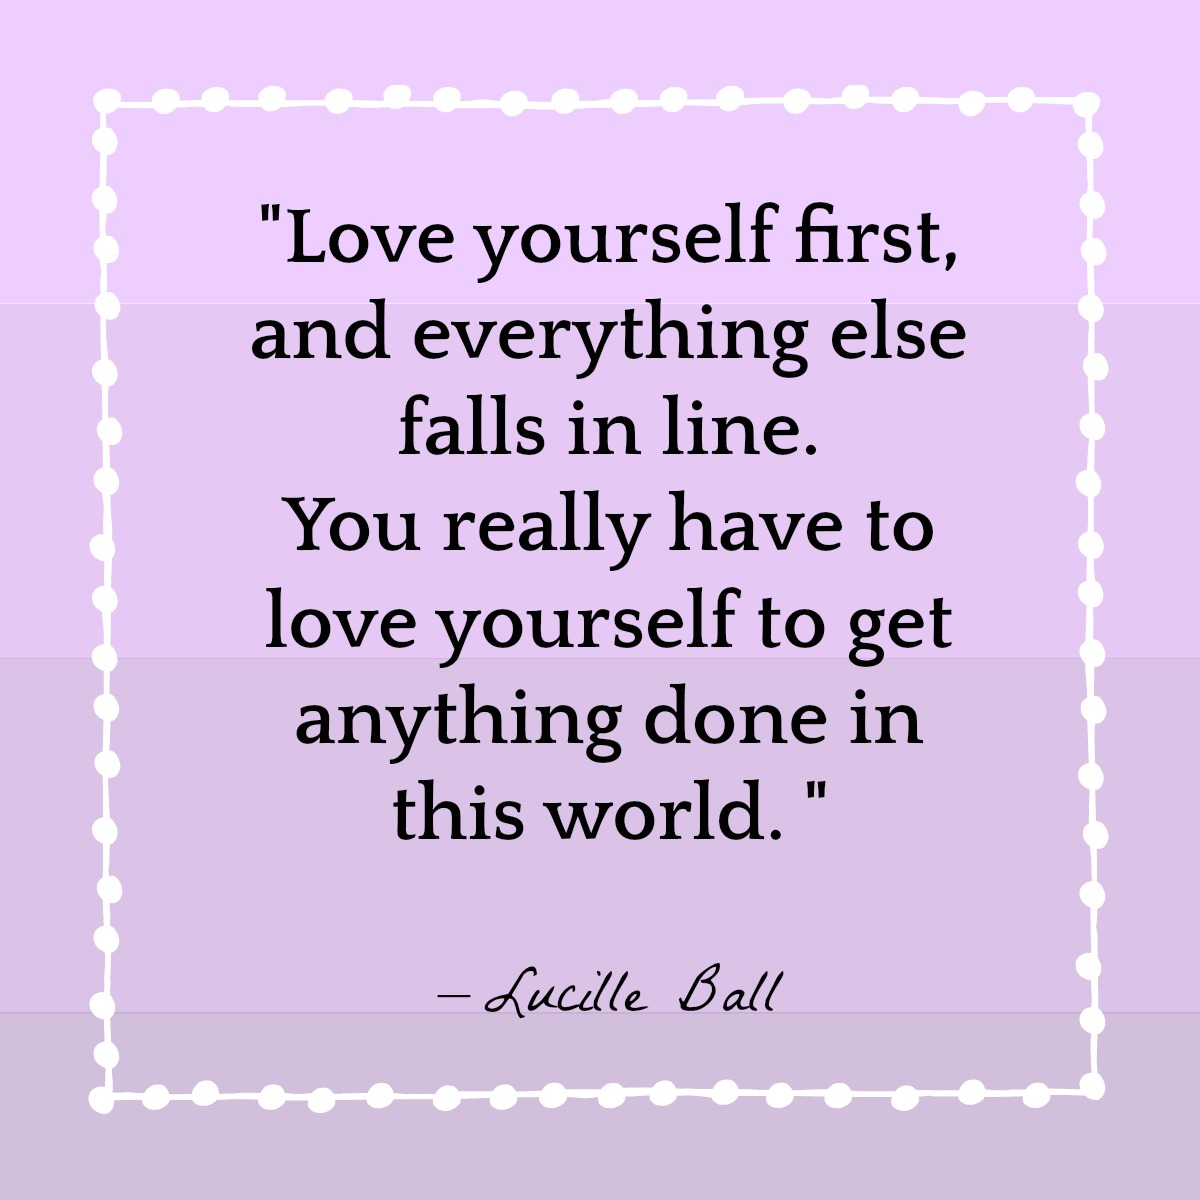 Self-Care Quote and January Self-Care Ideas for Moms